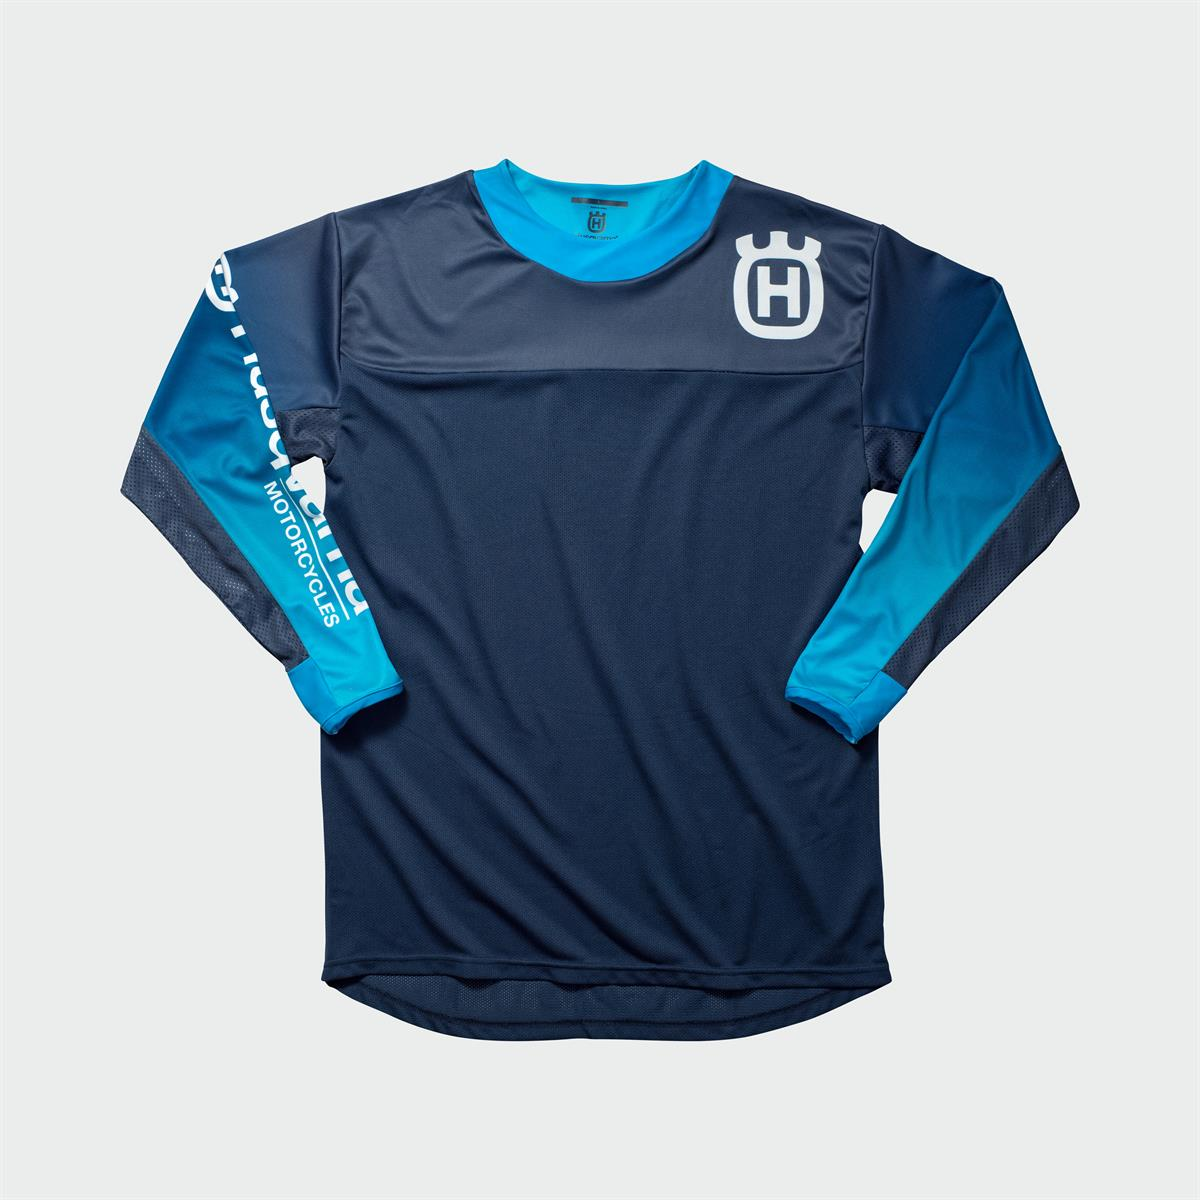 Husqvarna Functional Clothing - GOTLAND SHIRT BLUE